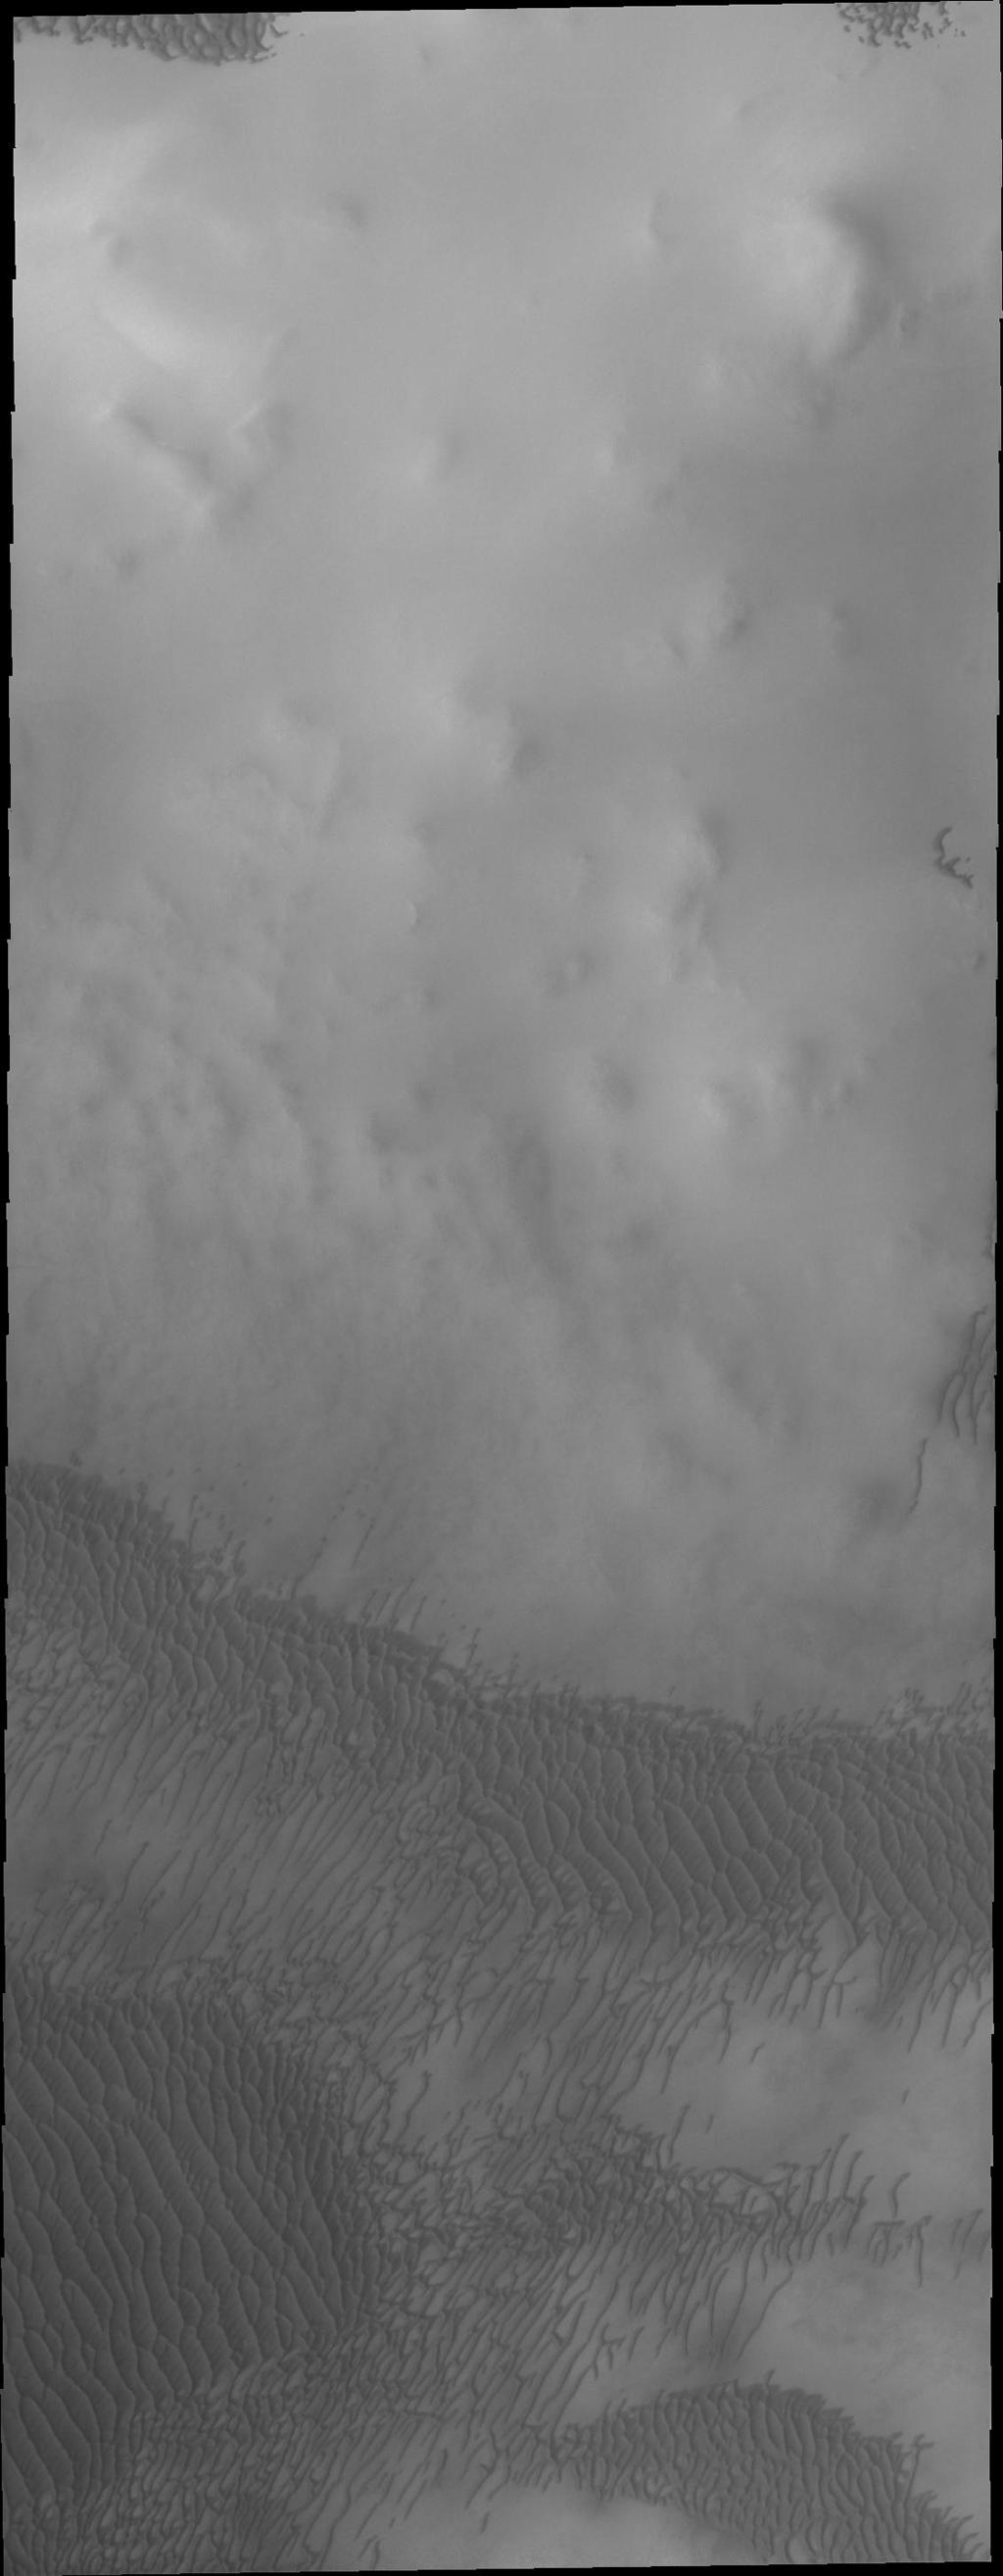 The dunes in this image captured by NASA's Mars Odyssey are near the north polar cap.